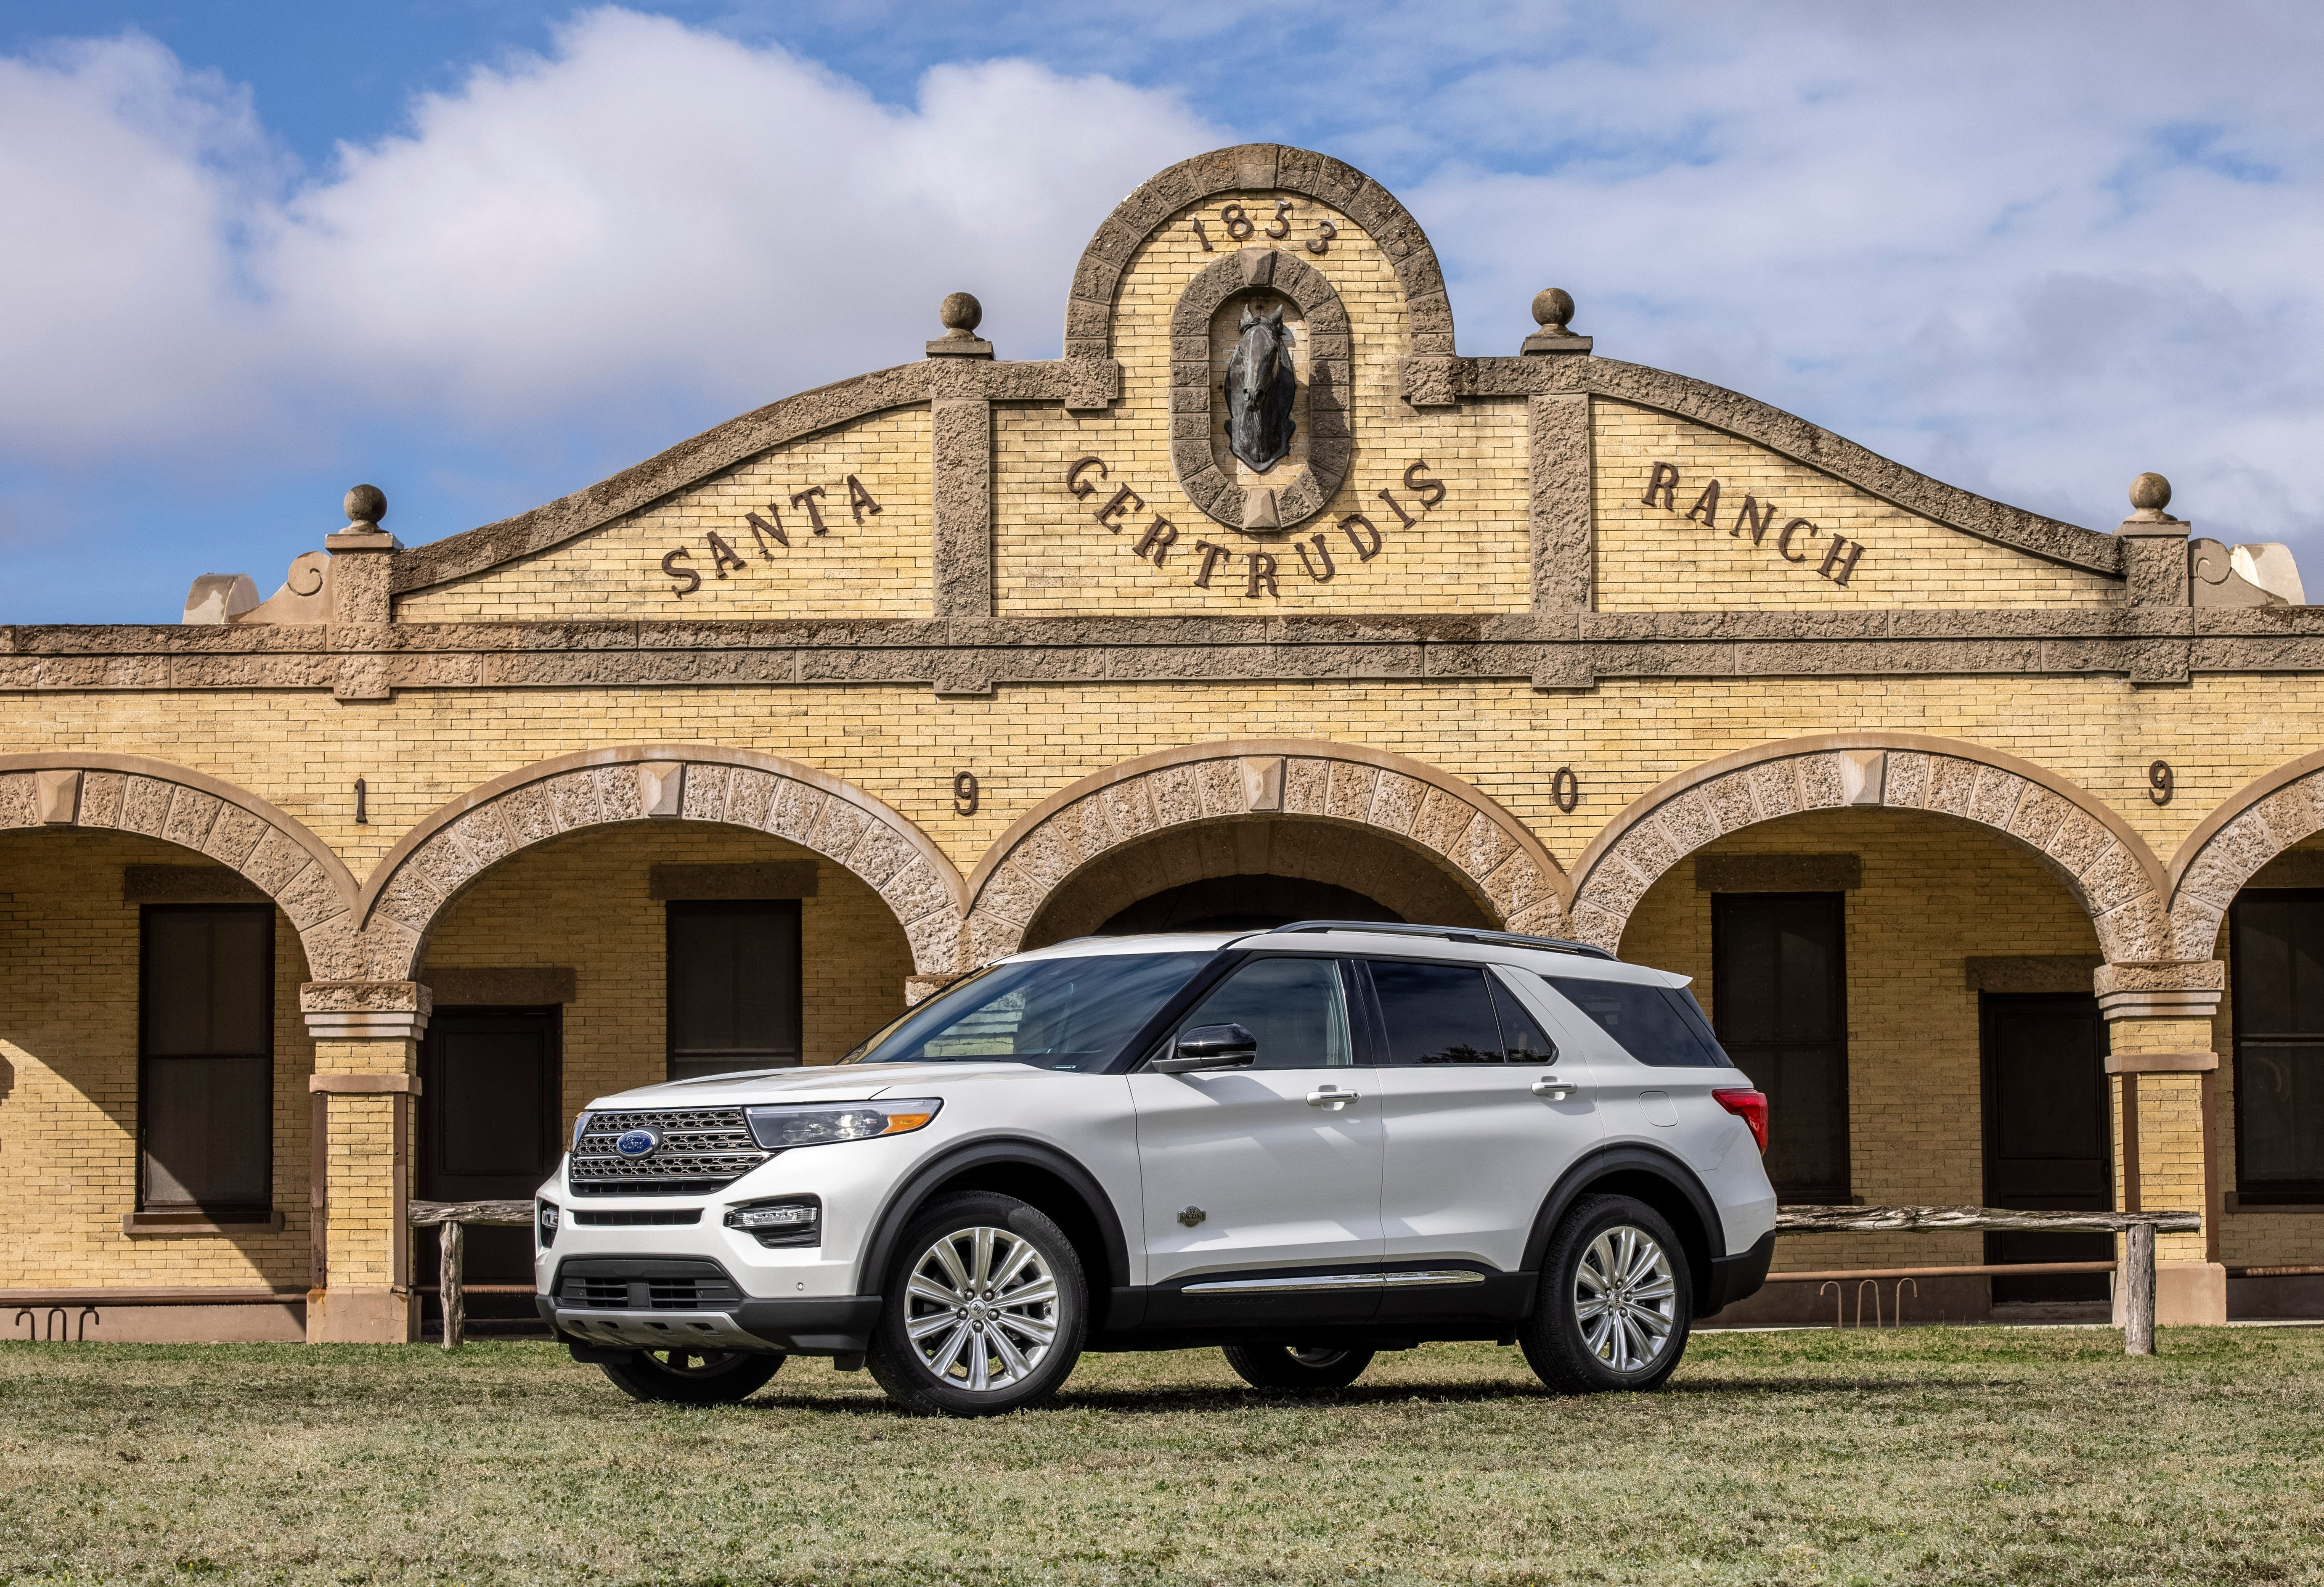 The new King Ranch Ford Explorer outside of the King Ranch in Texas.